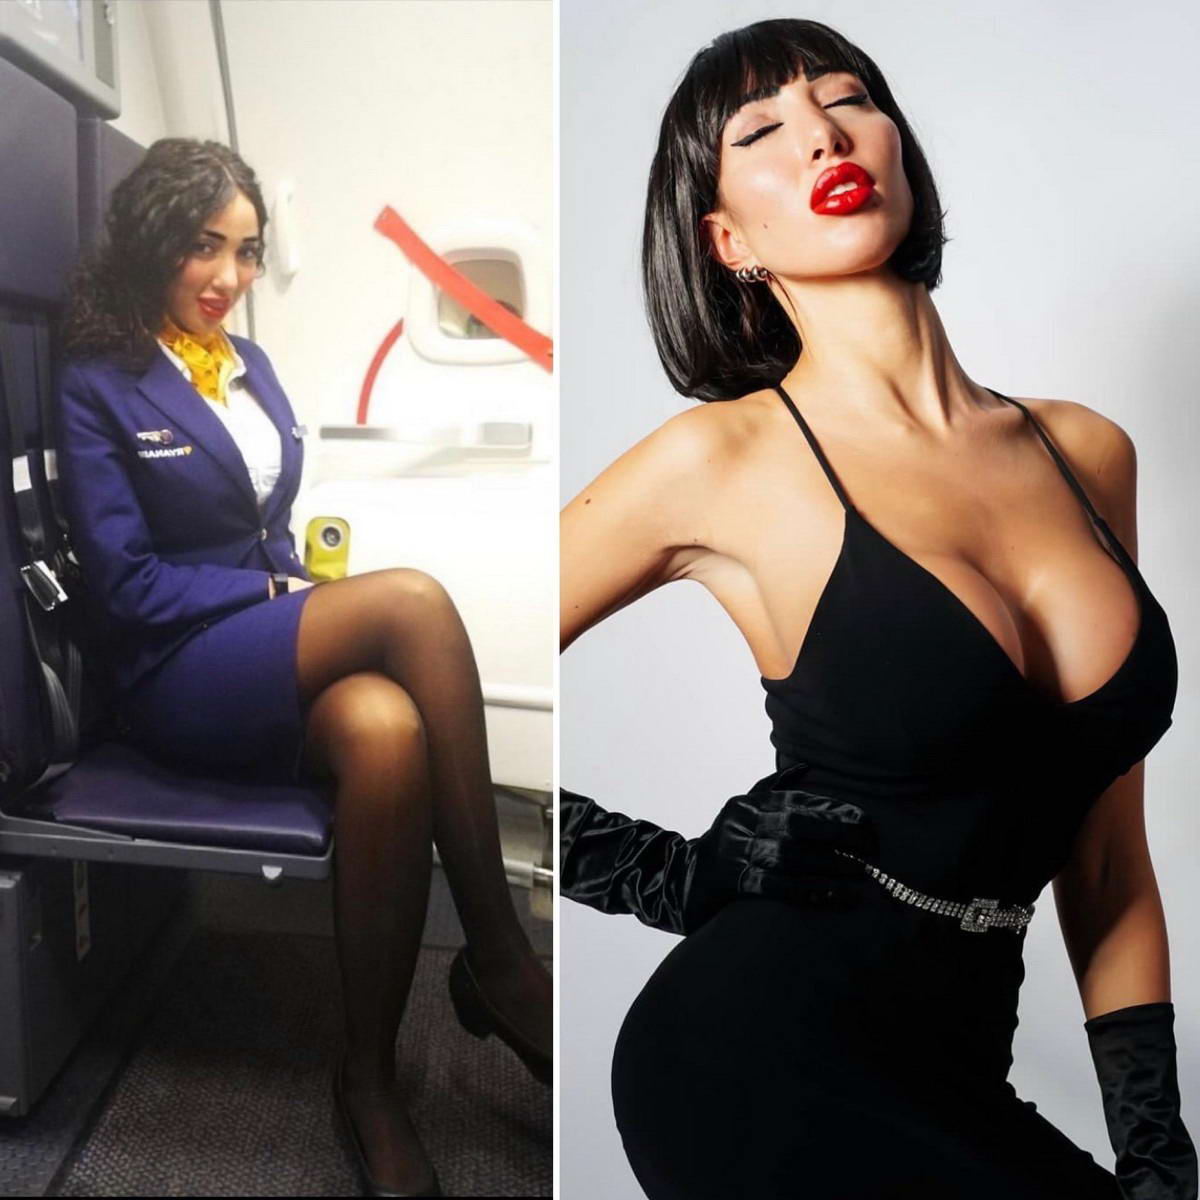 Hot Flight Attendants In And Out Uniform (34 Photos)